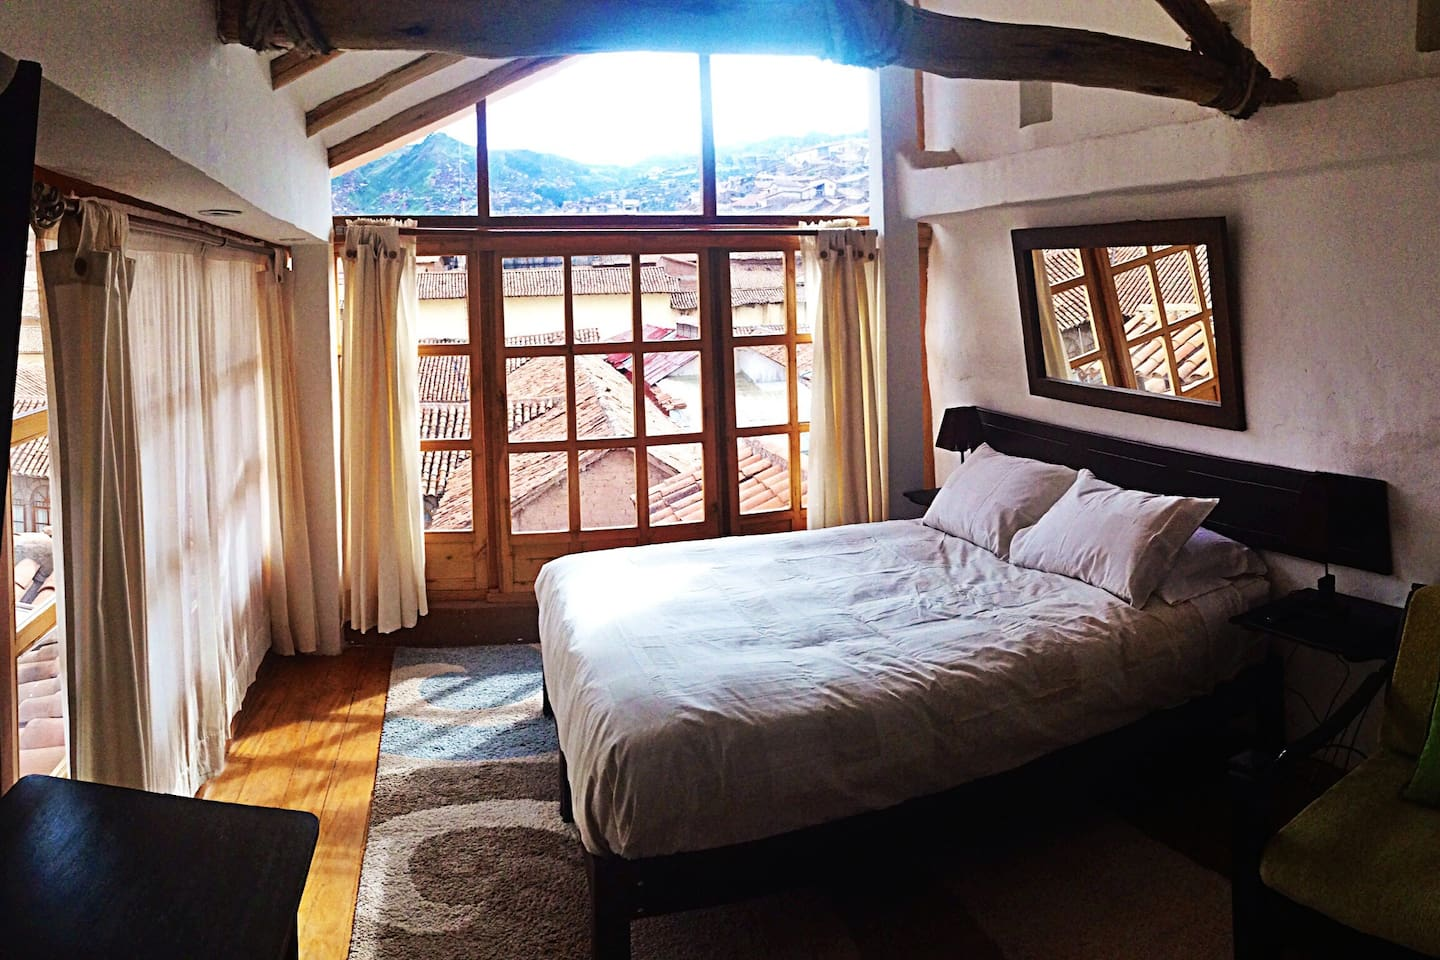 1Queen Bed Deluxe Private Ensuite with a view of the city and the mountains.